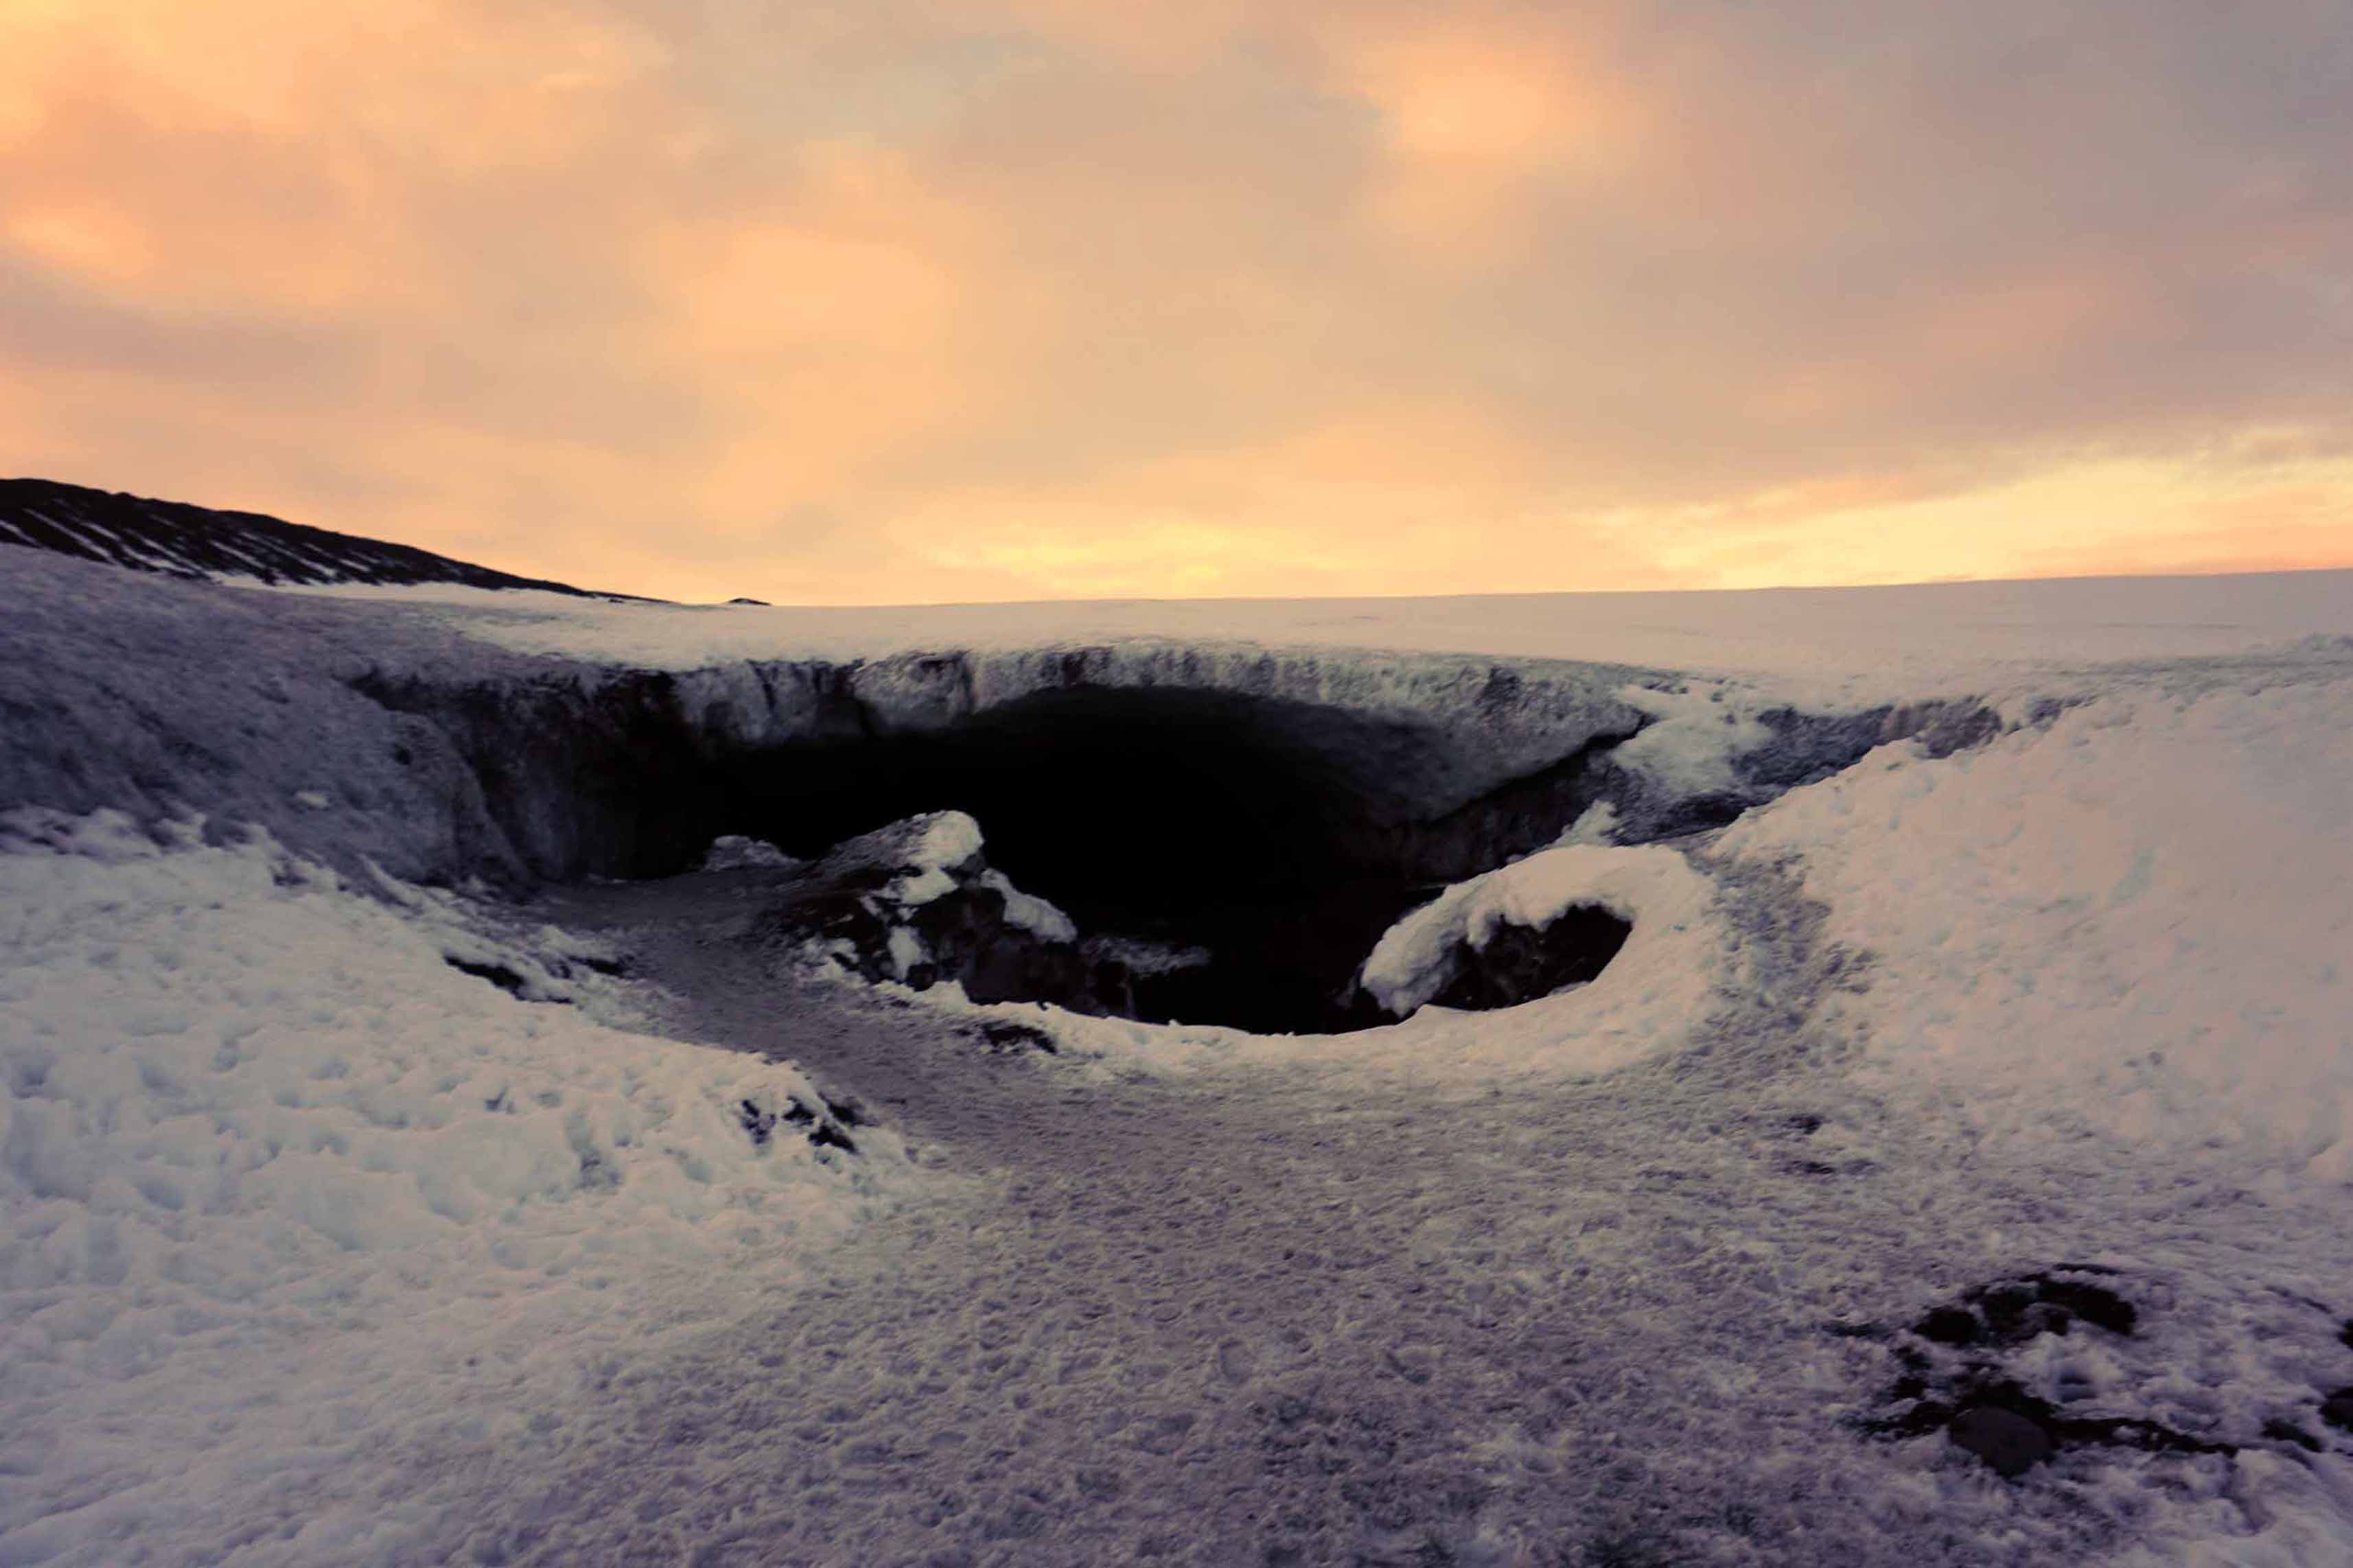 Entrance to an ice cave in the Vatnajokull glacier in Iceland